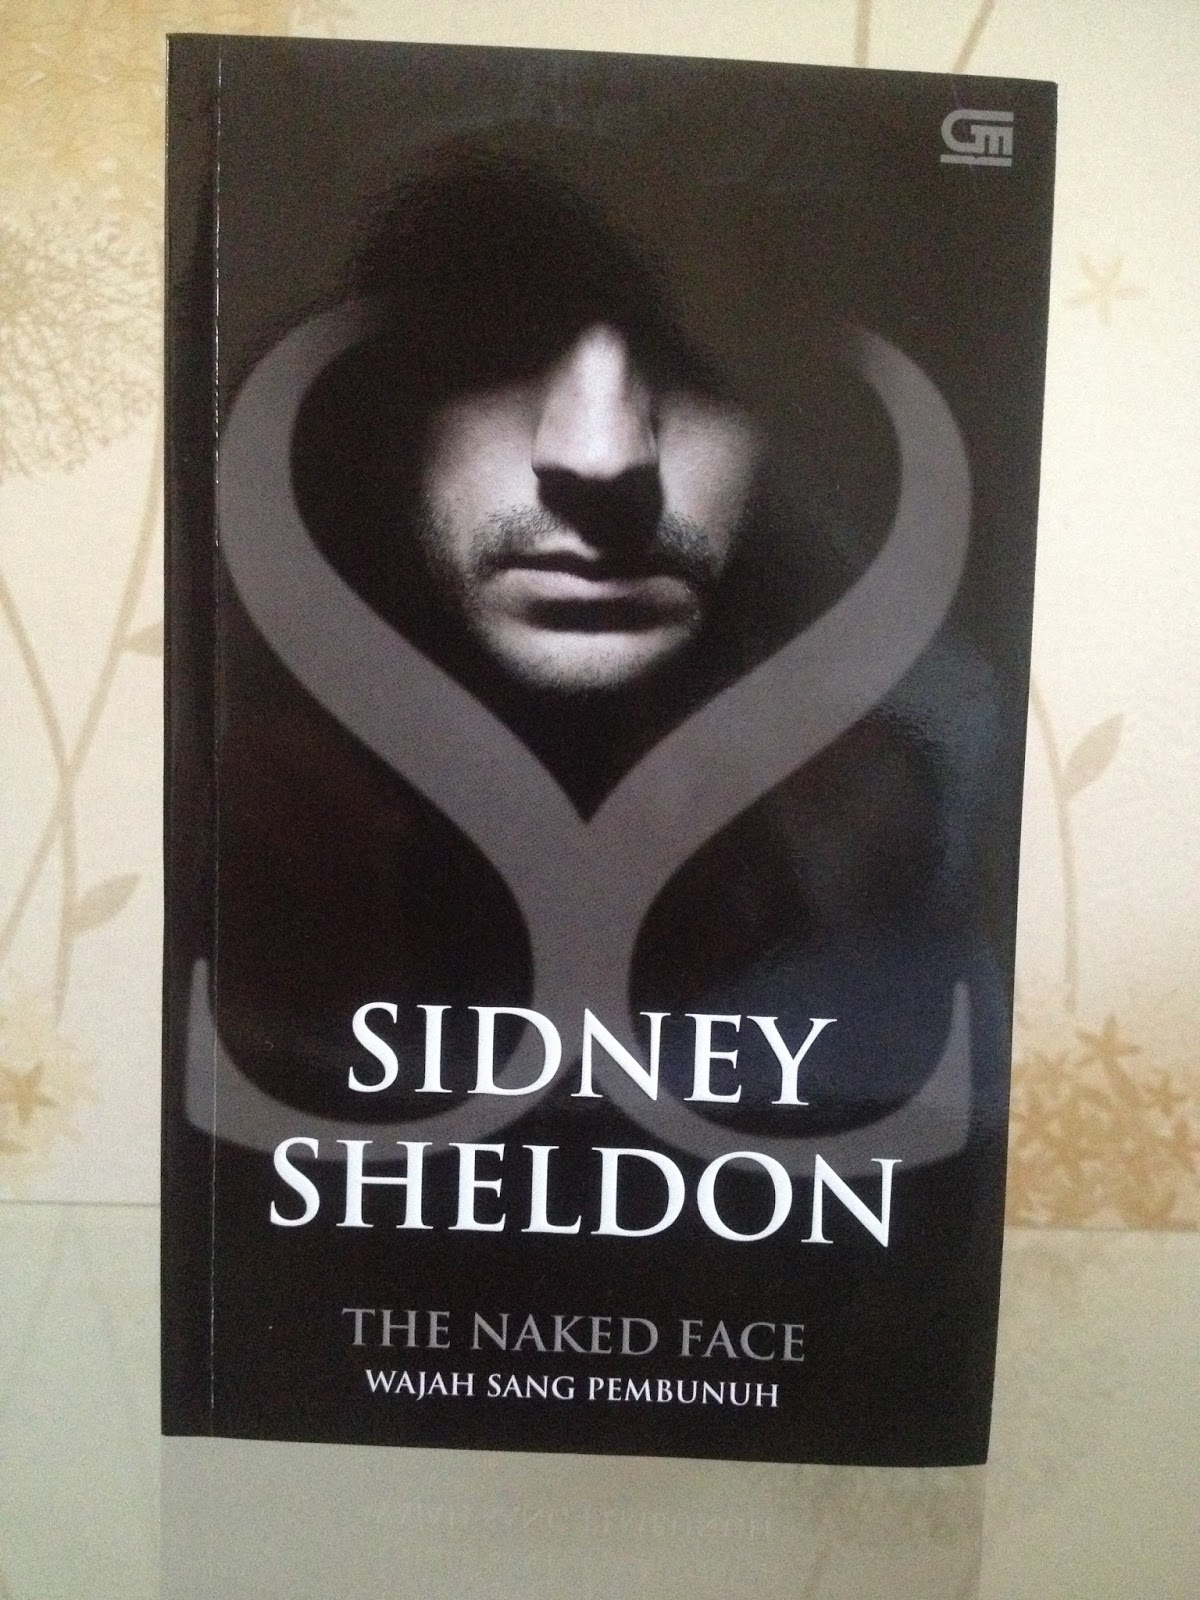 The naked face by sidney sheldon, slut gets bea porn movies